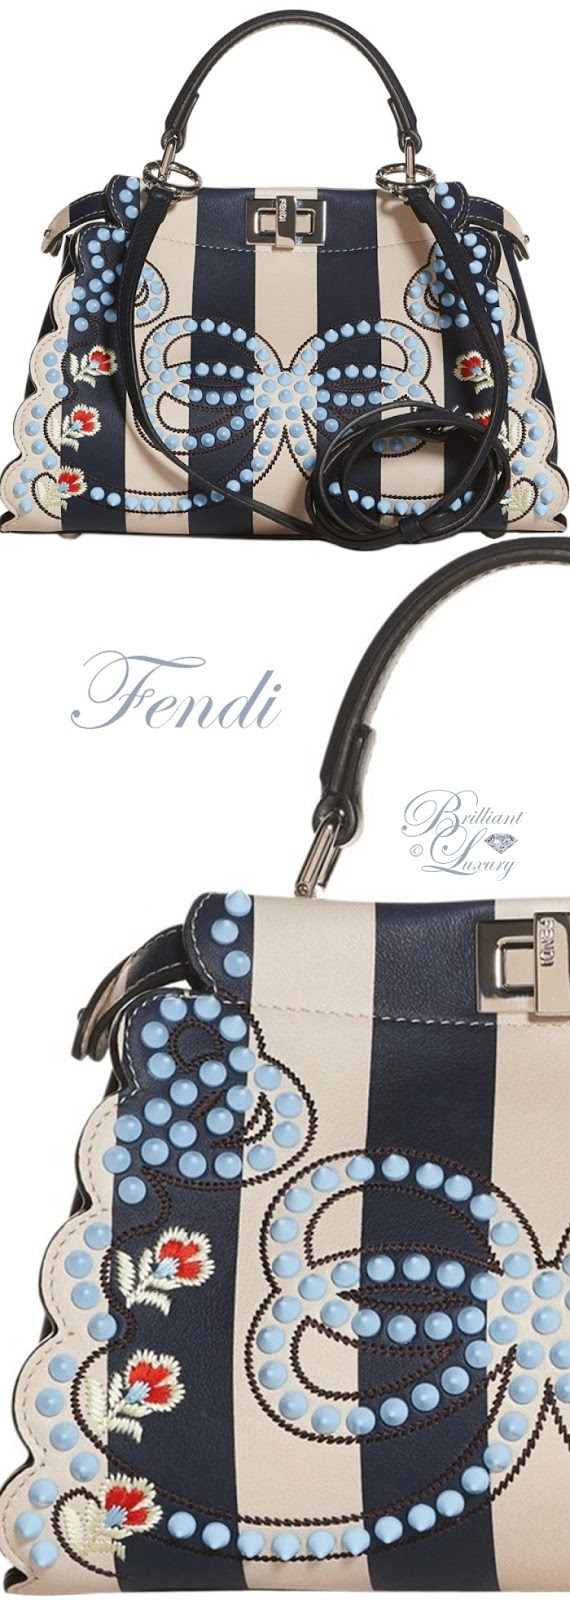 Brilliant Luxury ♦ Fendi Mini Peekaboo Studded Stripe Leather Satchel in Midnight Blue-Camalia